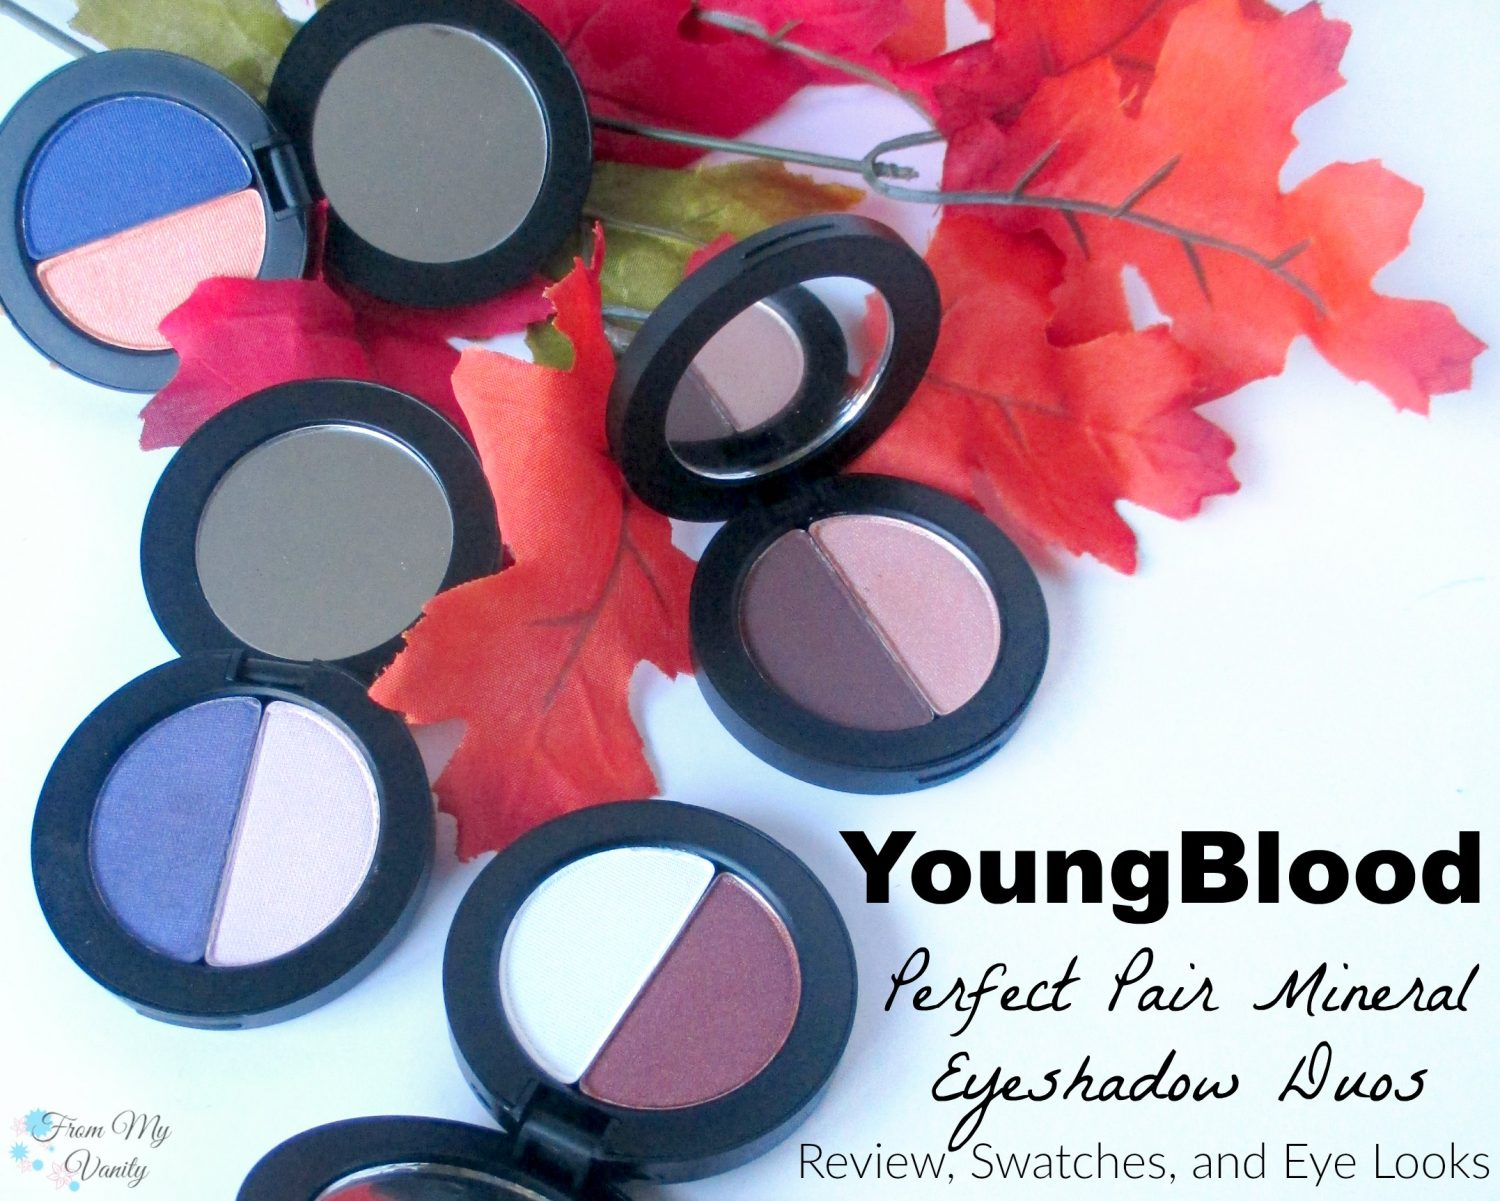 YoungBlood Perfect Pair // Mineral Eyeshadow Duos // Review, Swatches, & Eye Looks // @LadyKaty92 FromMyVanity.com